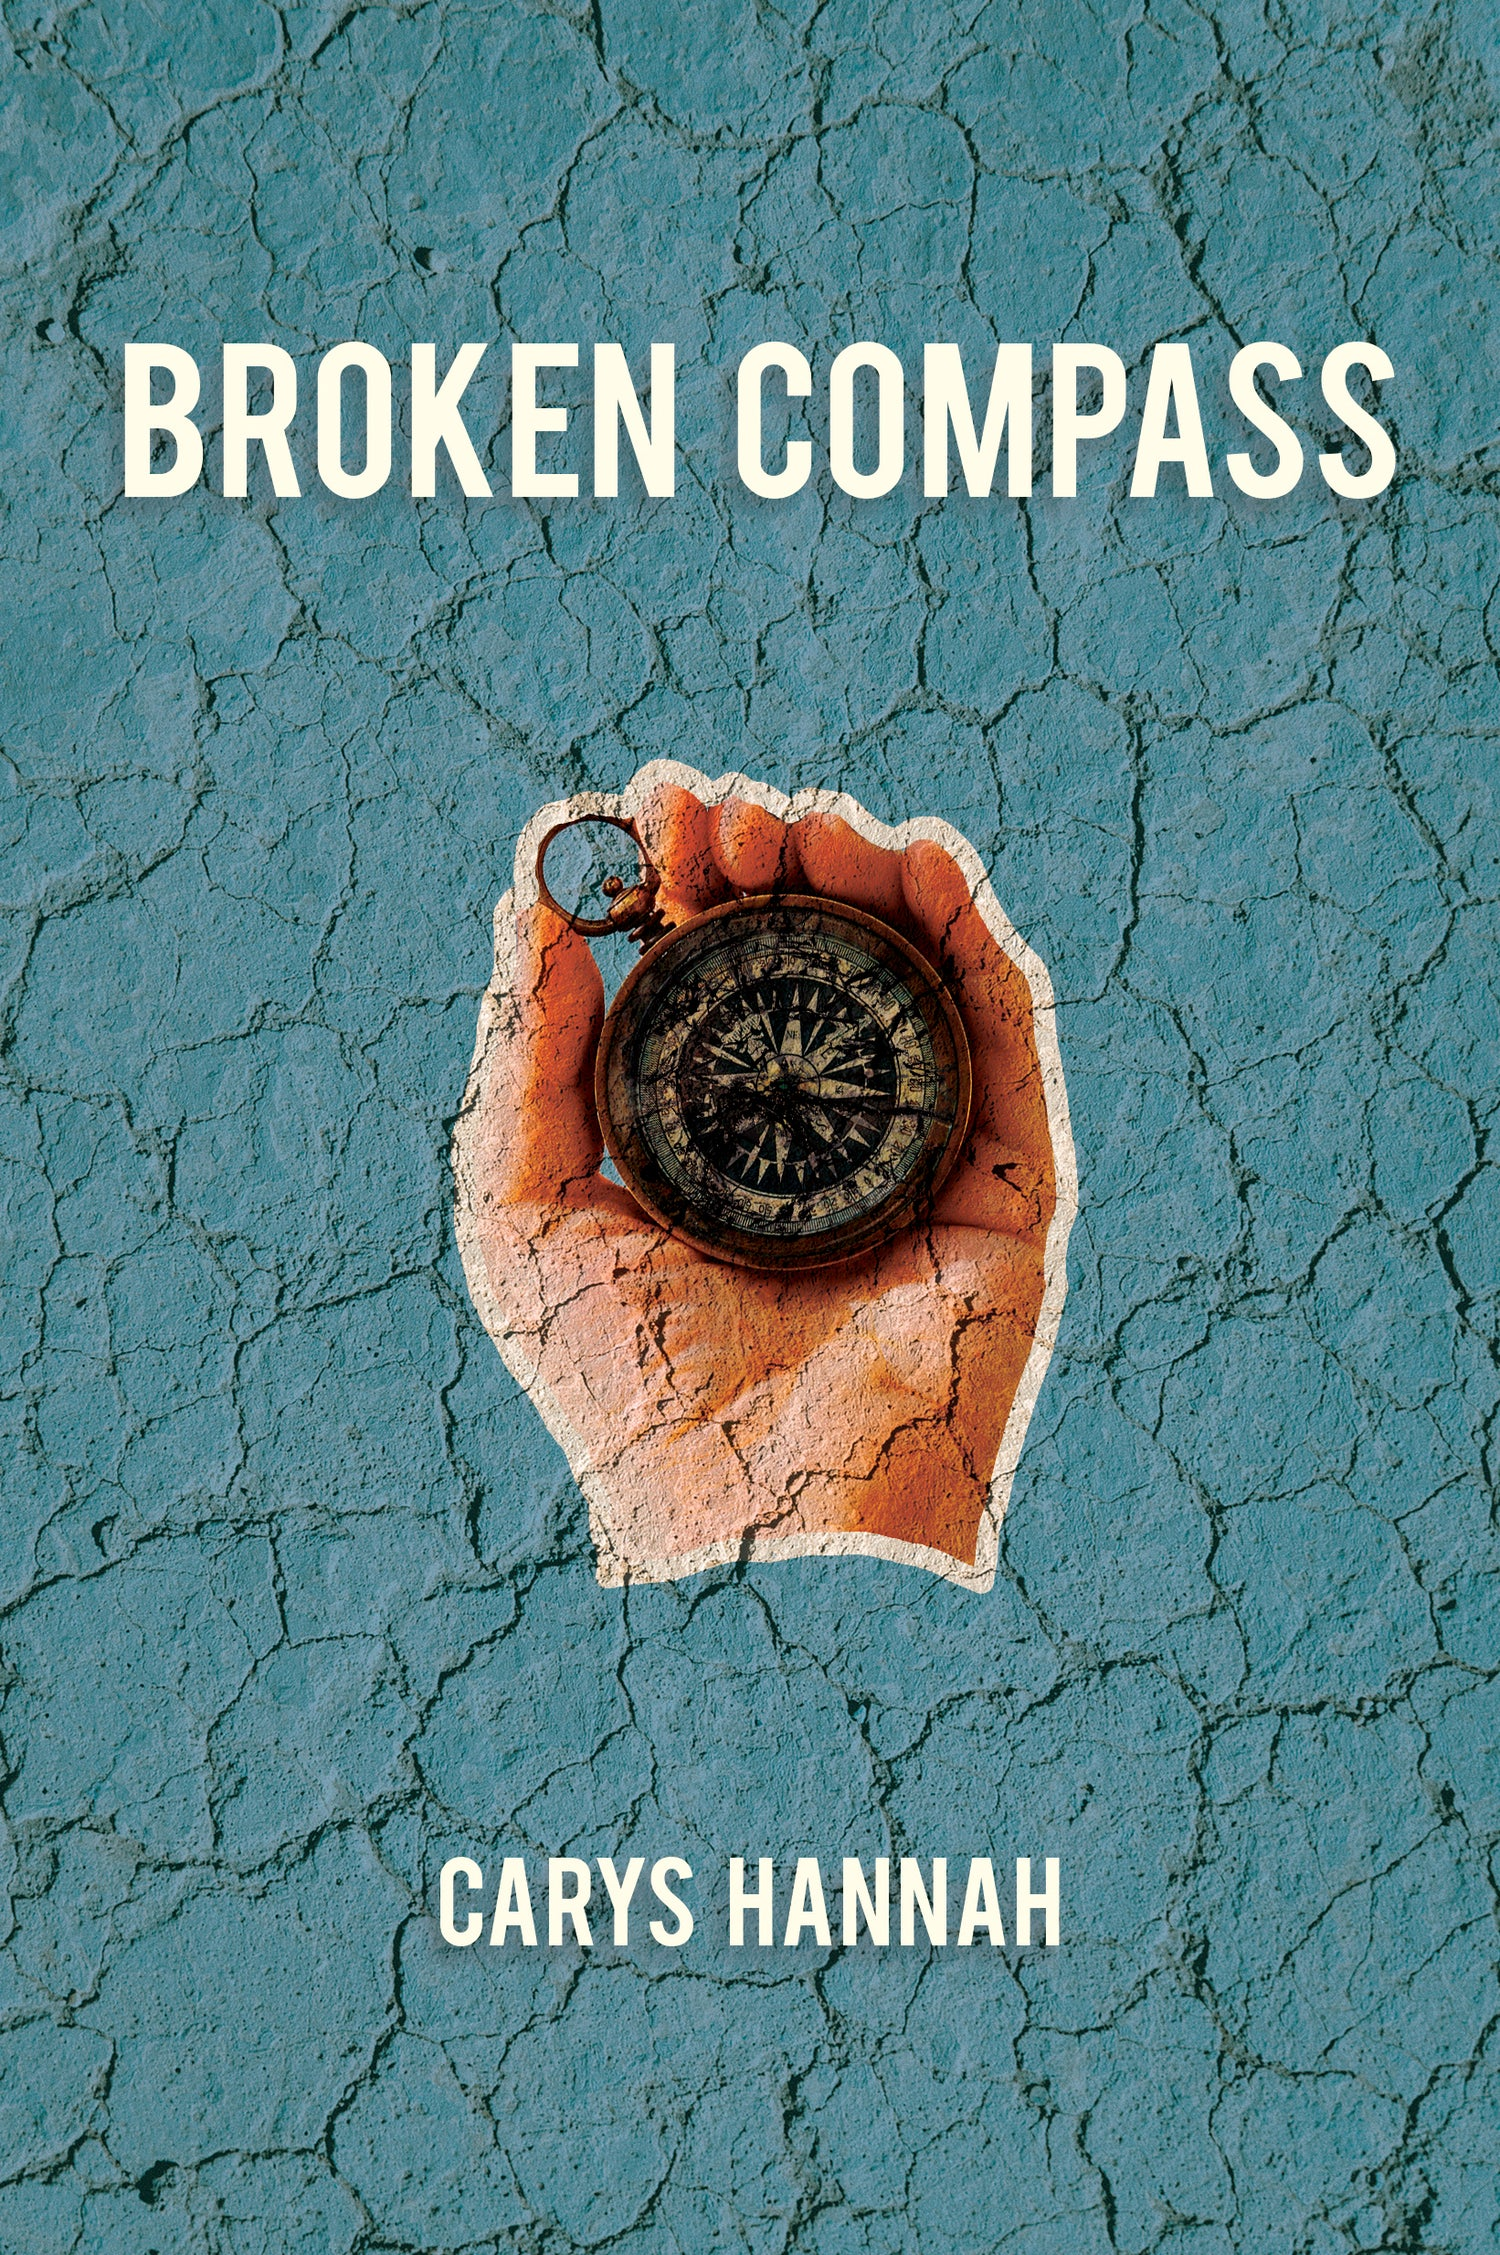 Image of Broken Compass by Carys Hannah